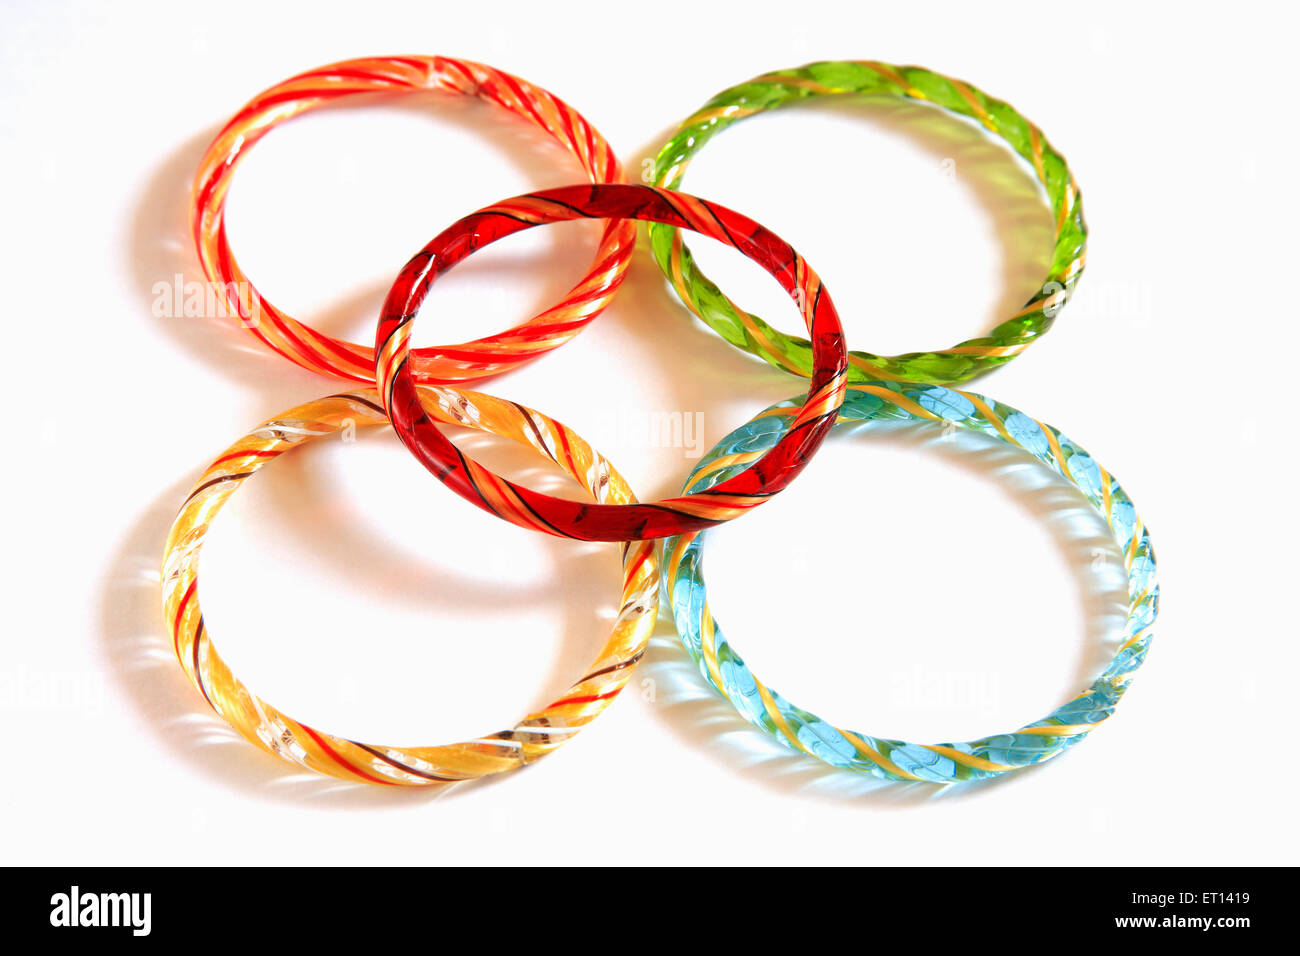 Colourful glass bangles on white background - Stock Image